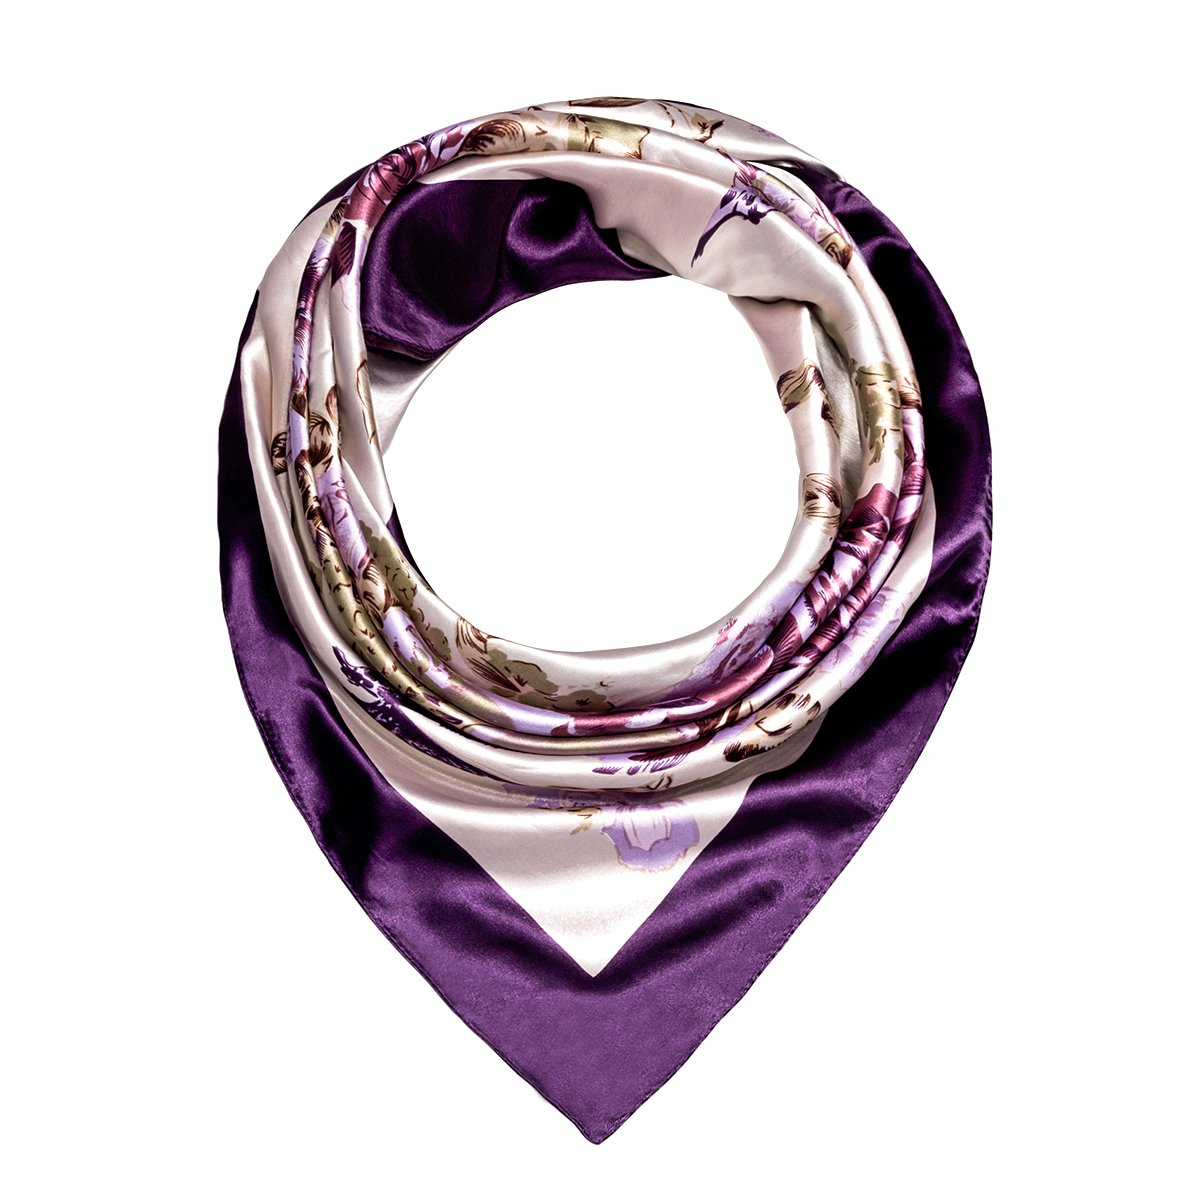 Flowomen Women\'s Silk Scarf Colorful Square Large Neckerchief Daily Luxury Fashion Wrap (Purple1)